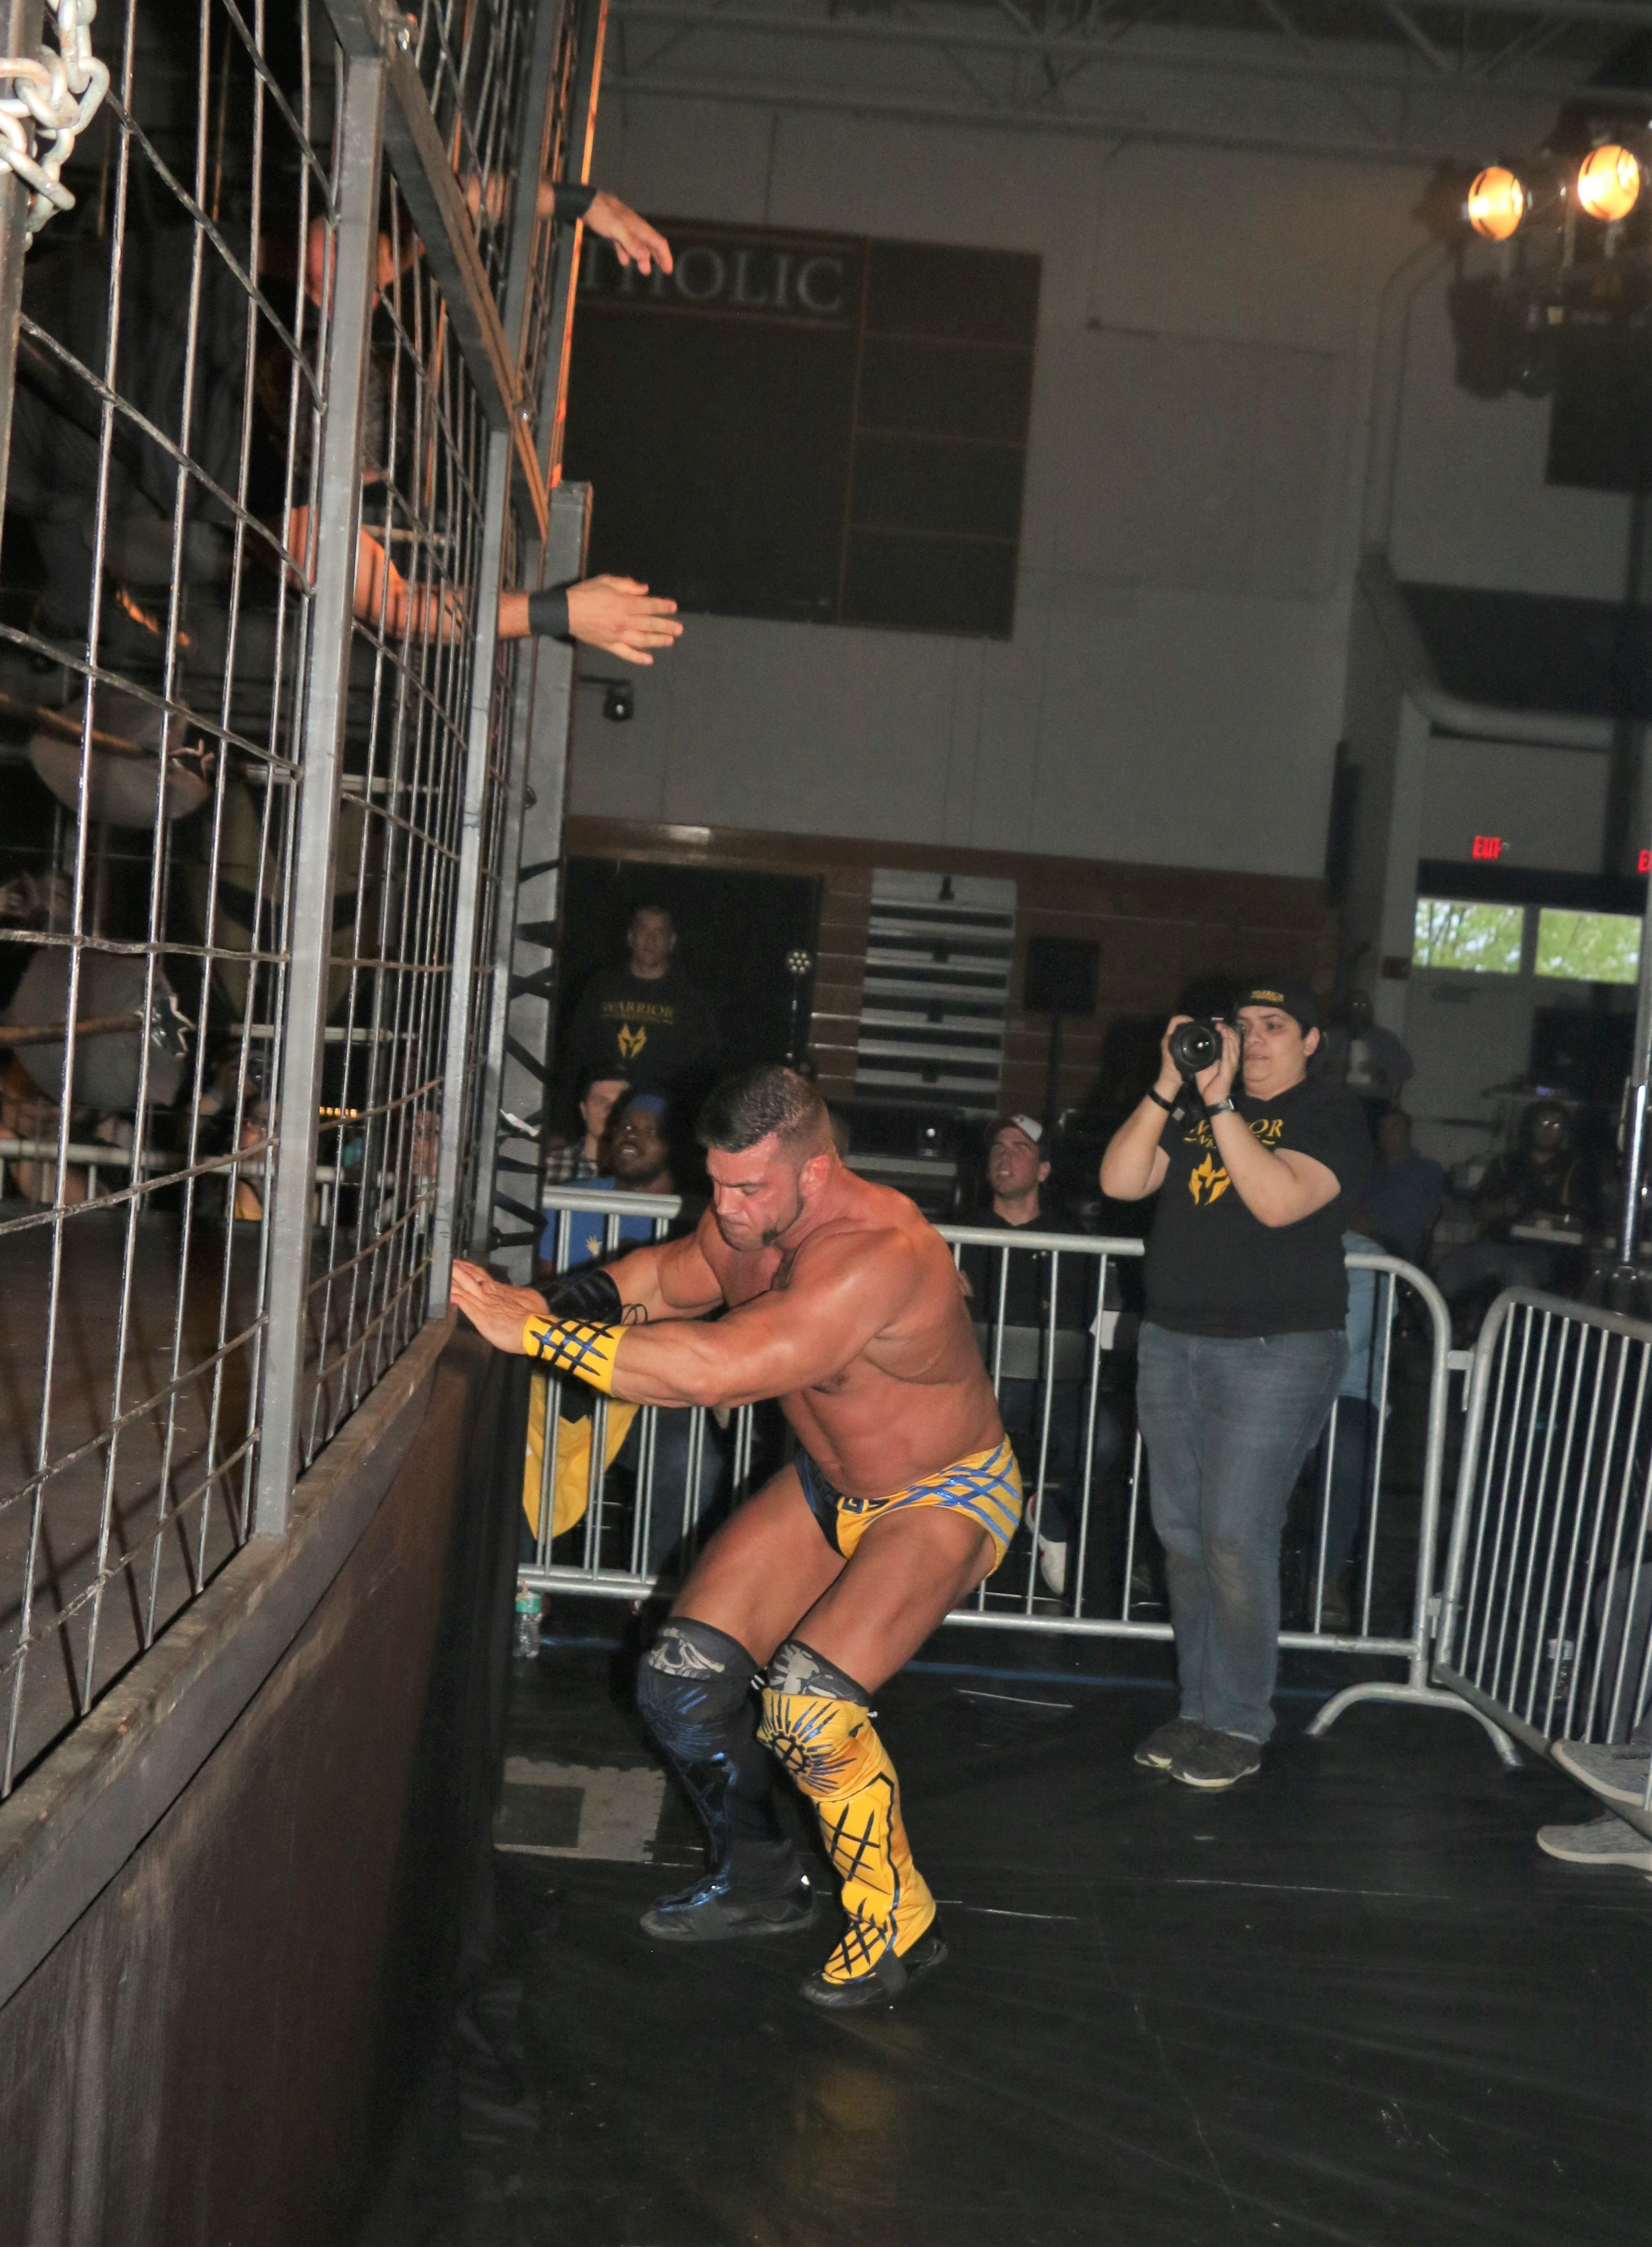 Brian Cage hits the floor to earn the victory and successfully defend his Warrior Wrestling Championship.